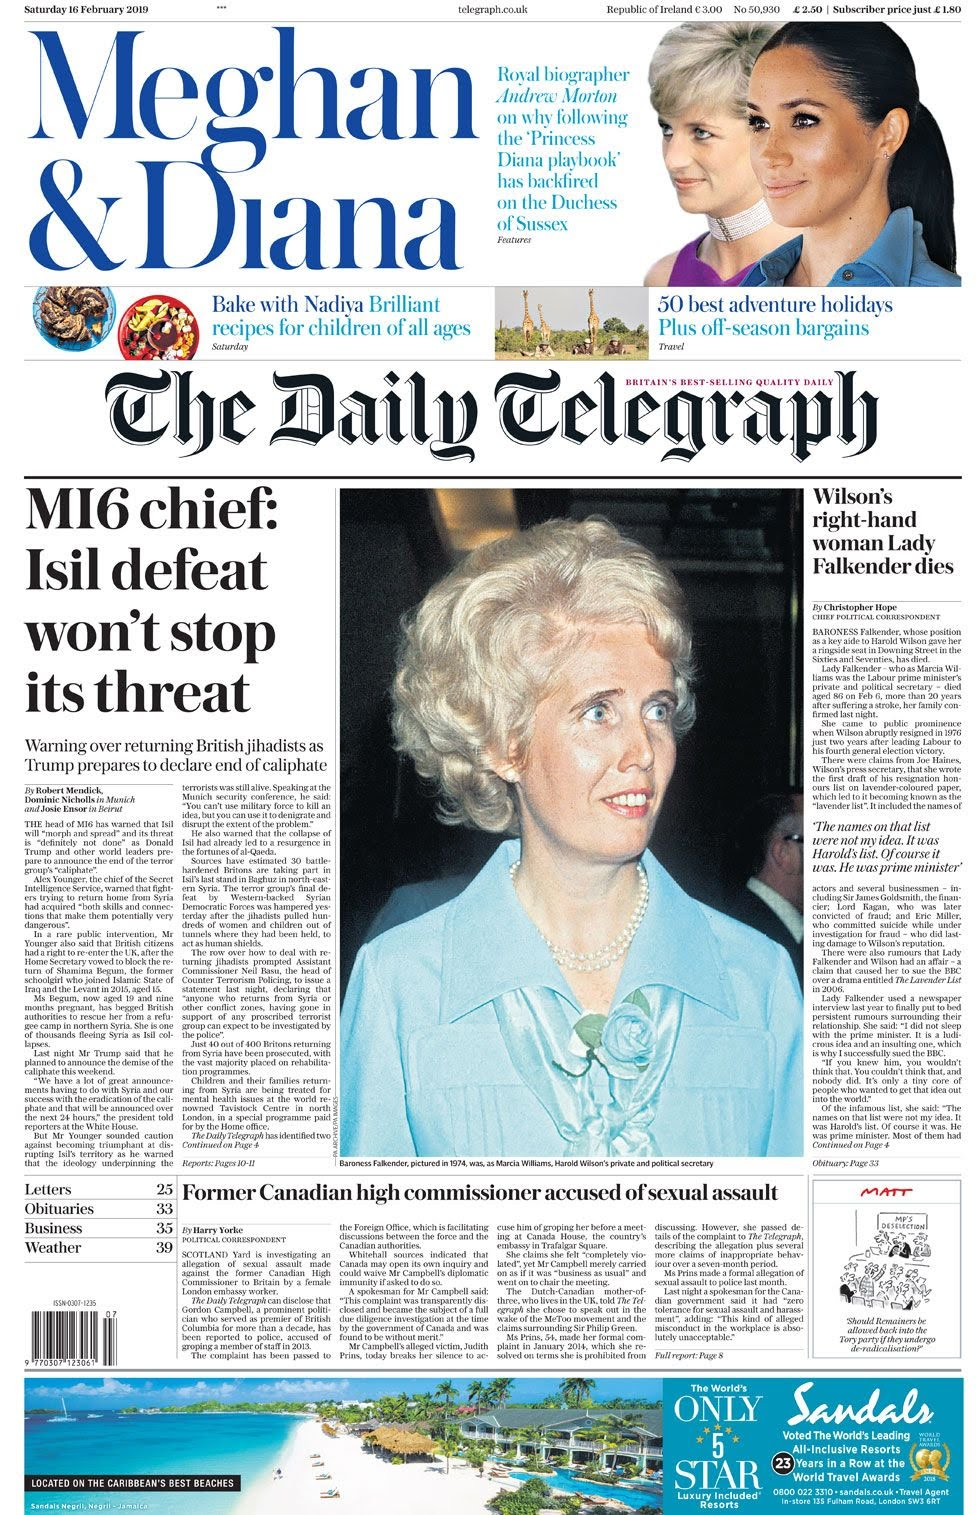 The Daily Telegraph front page on 16 February 2019